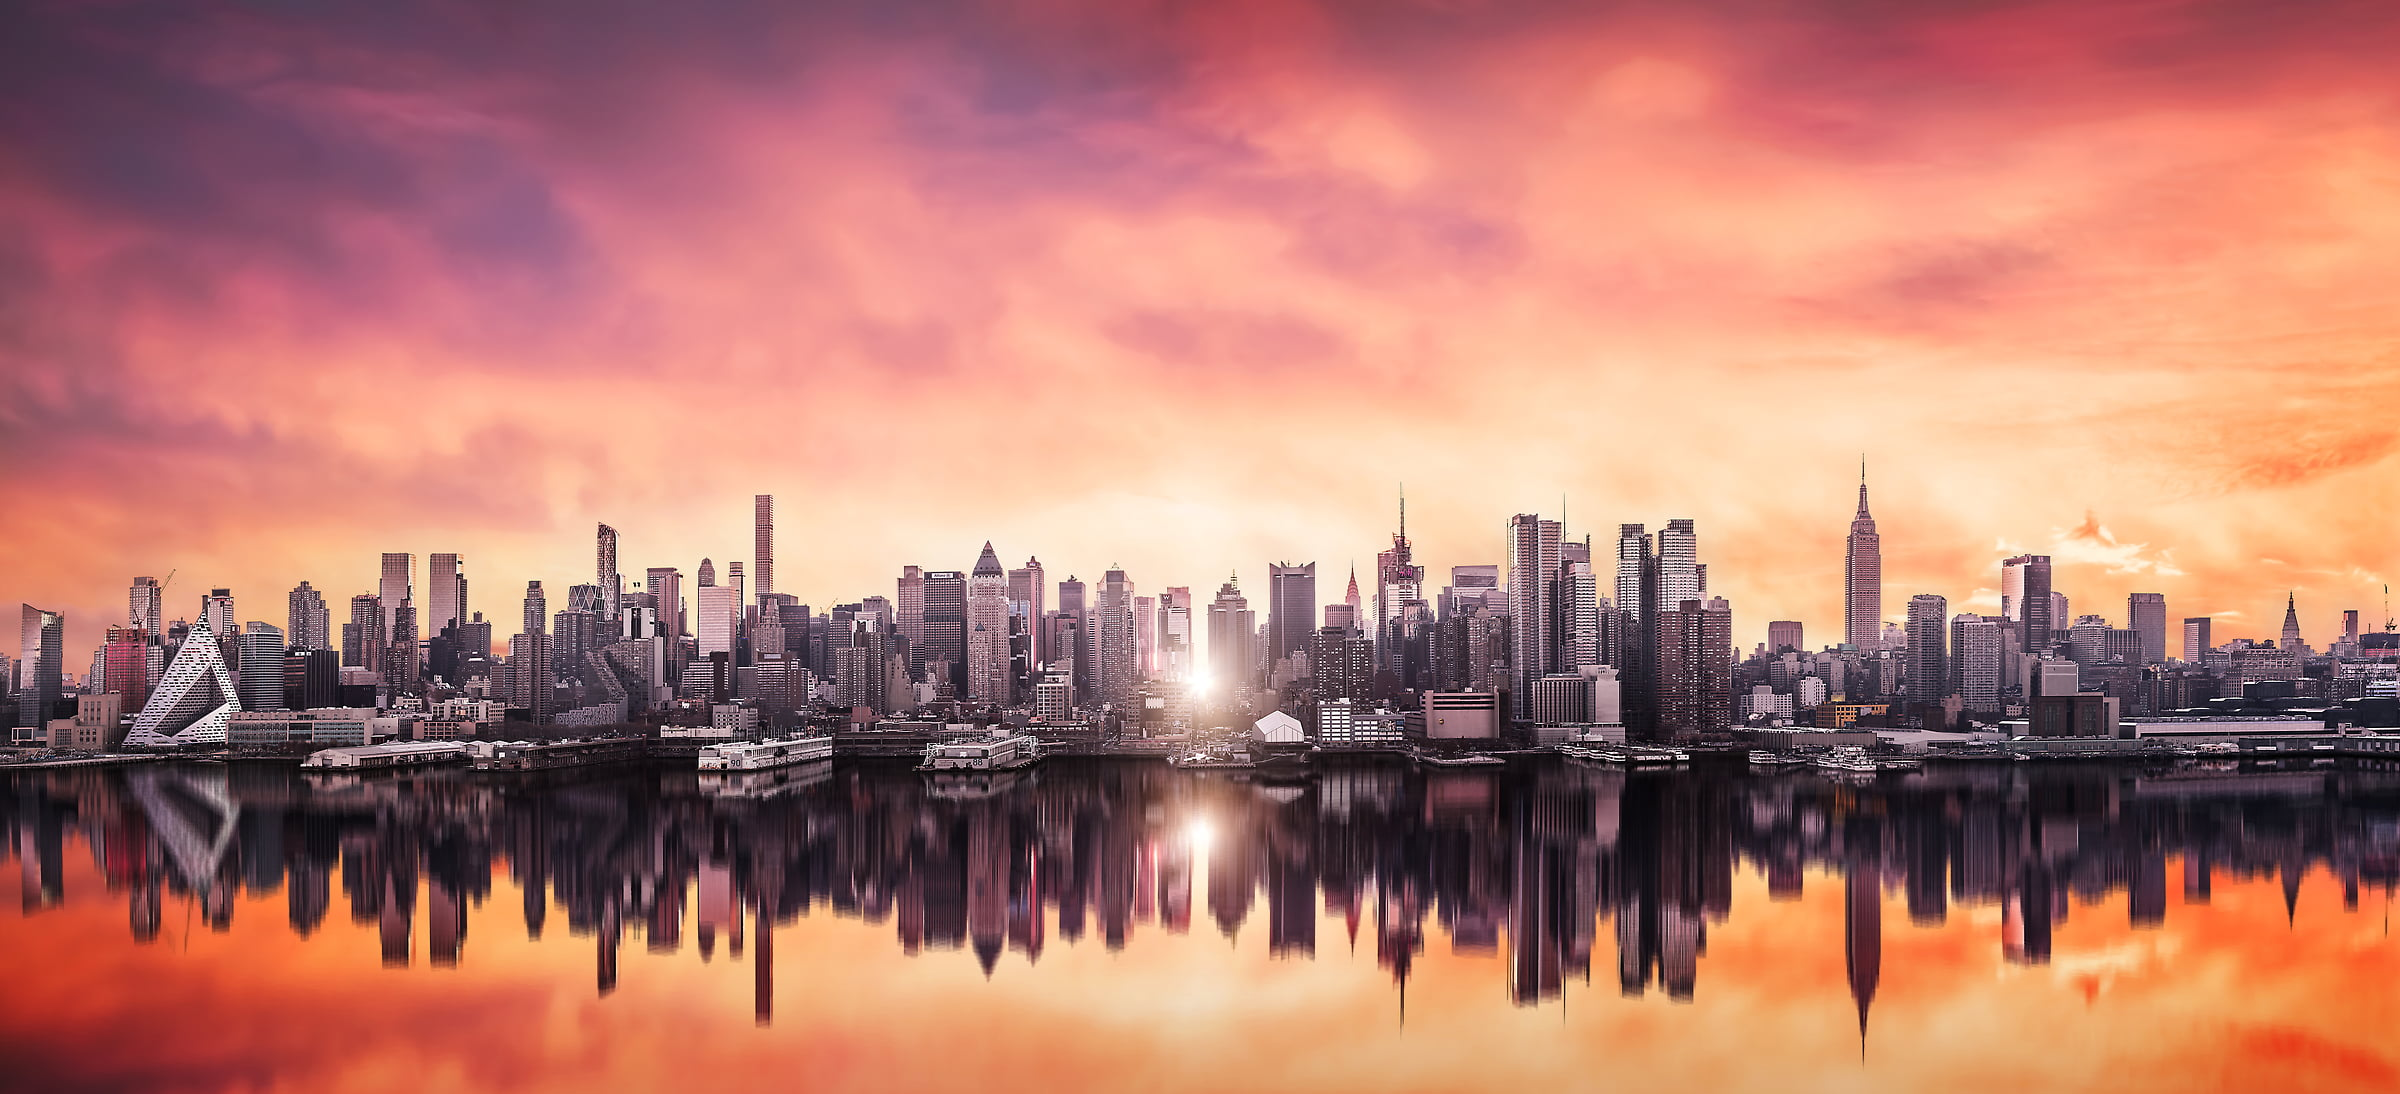 A very high definition cityscape VAST photo of Manhattanhenge sunrise among the Midtown Manhattan city skyline skyscrapers; created in New York City by Dan Piech